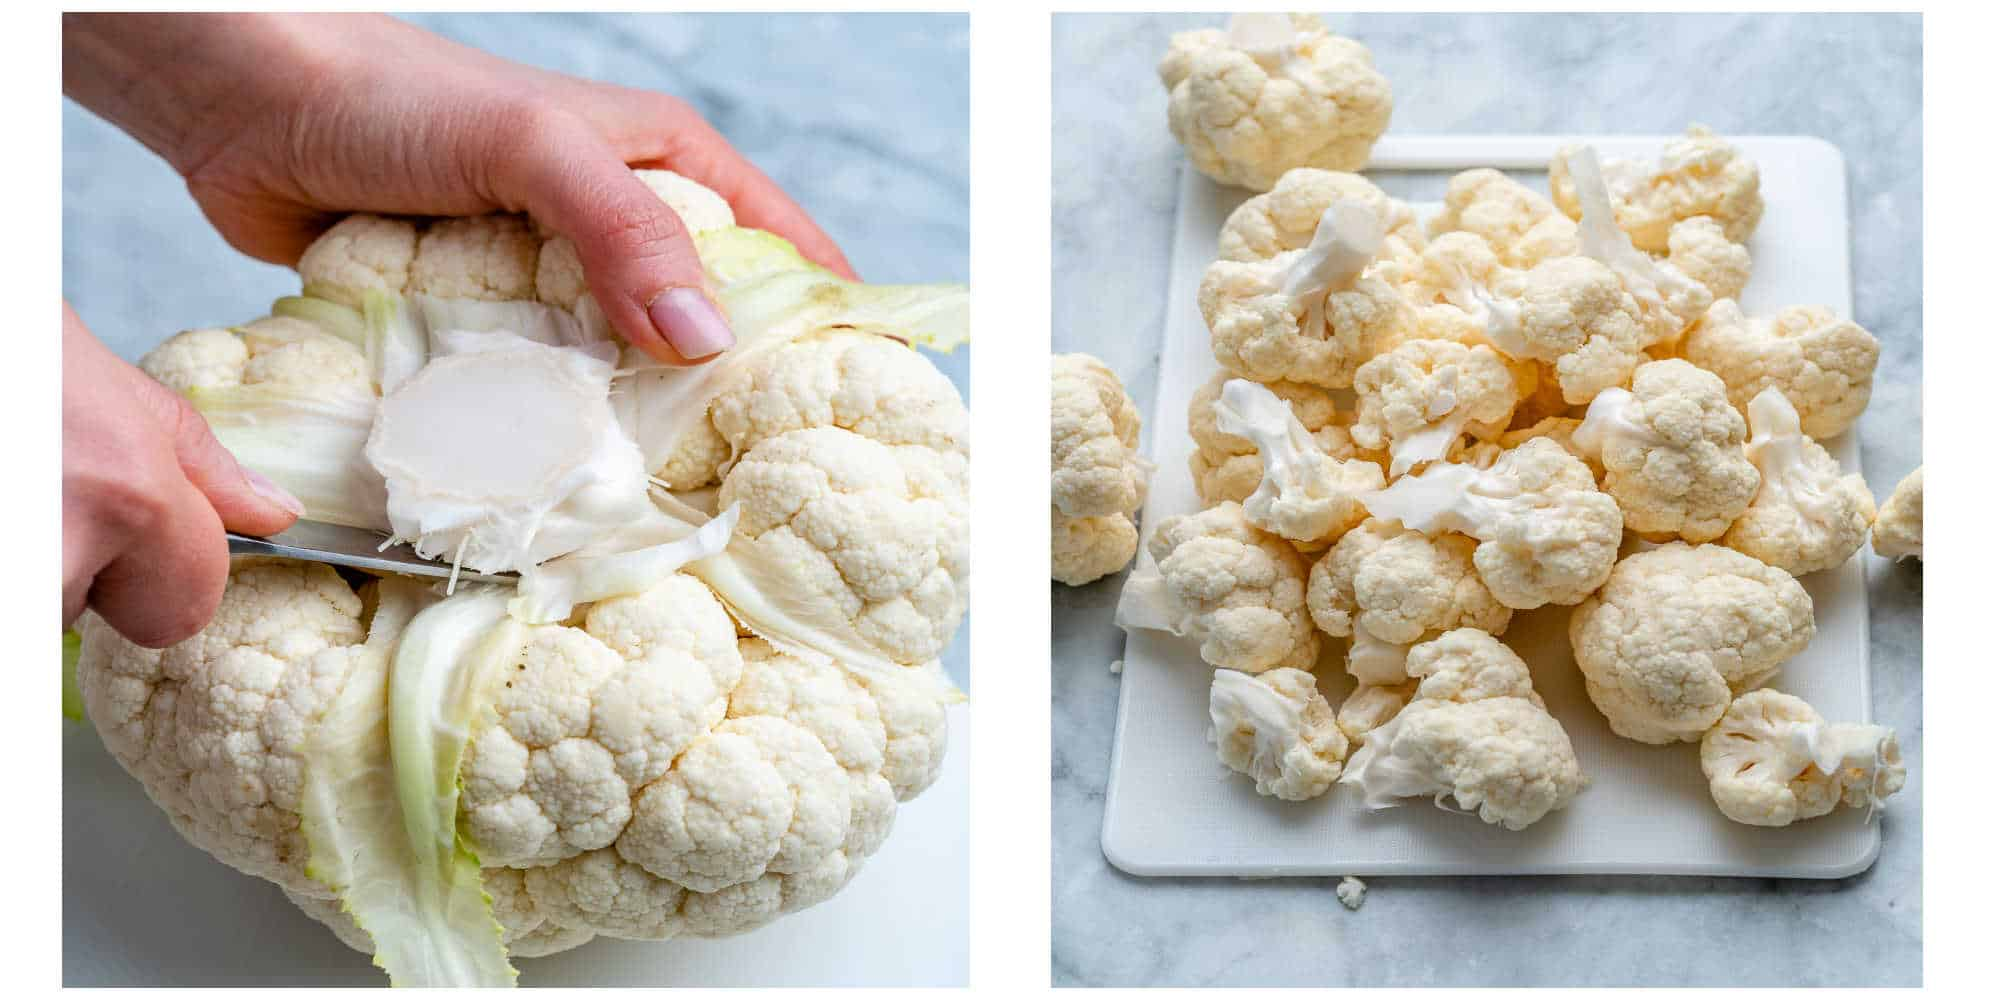 collage of whole cauliflower on the left and cut up cauliflower on the right